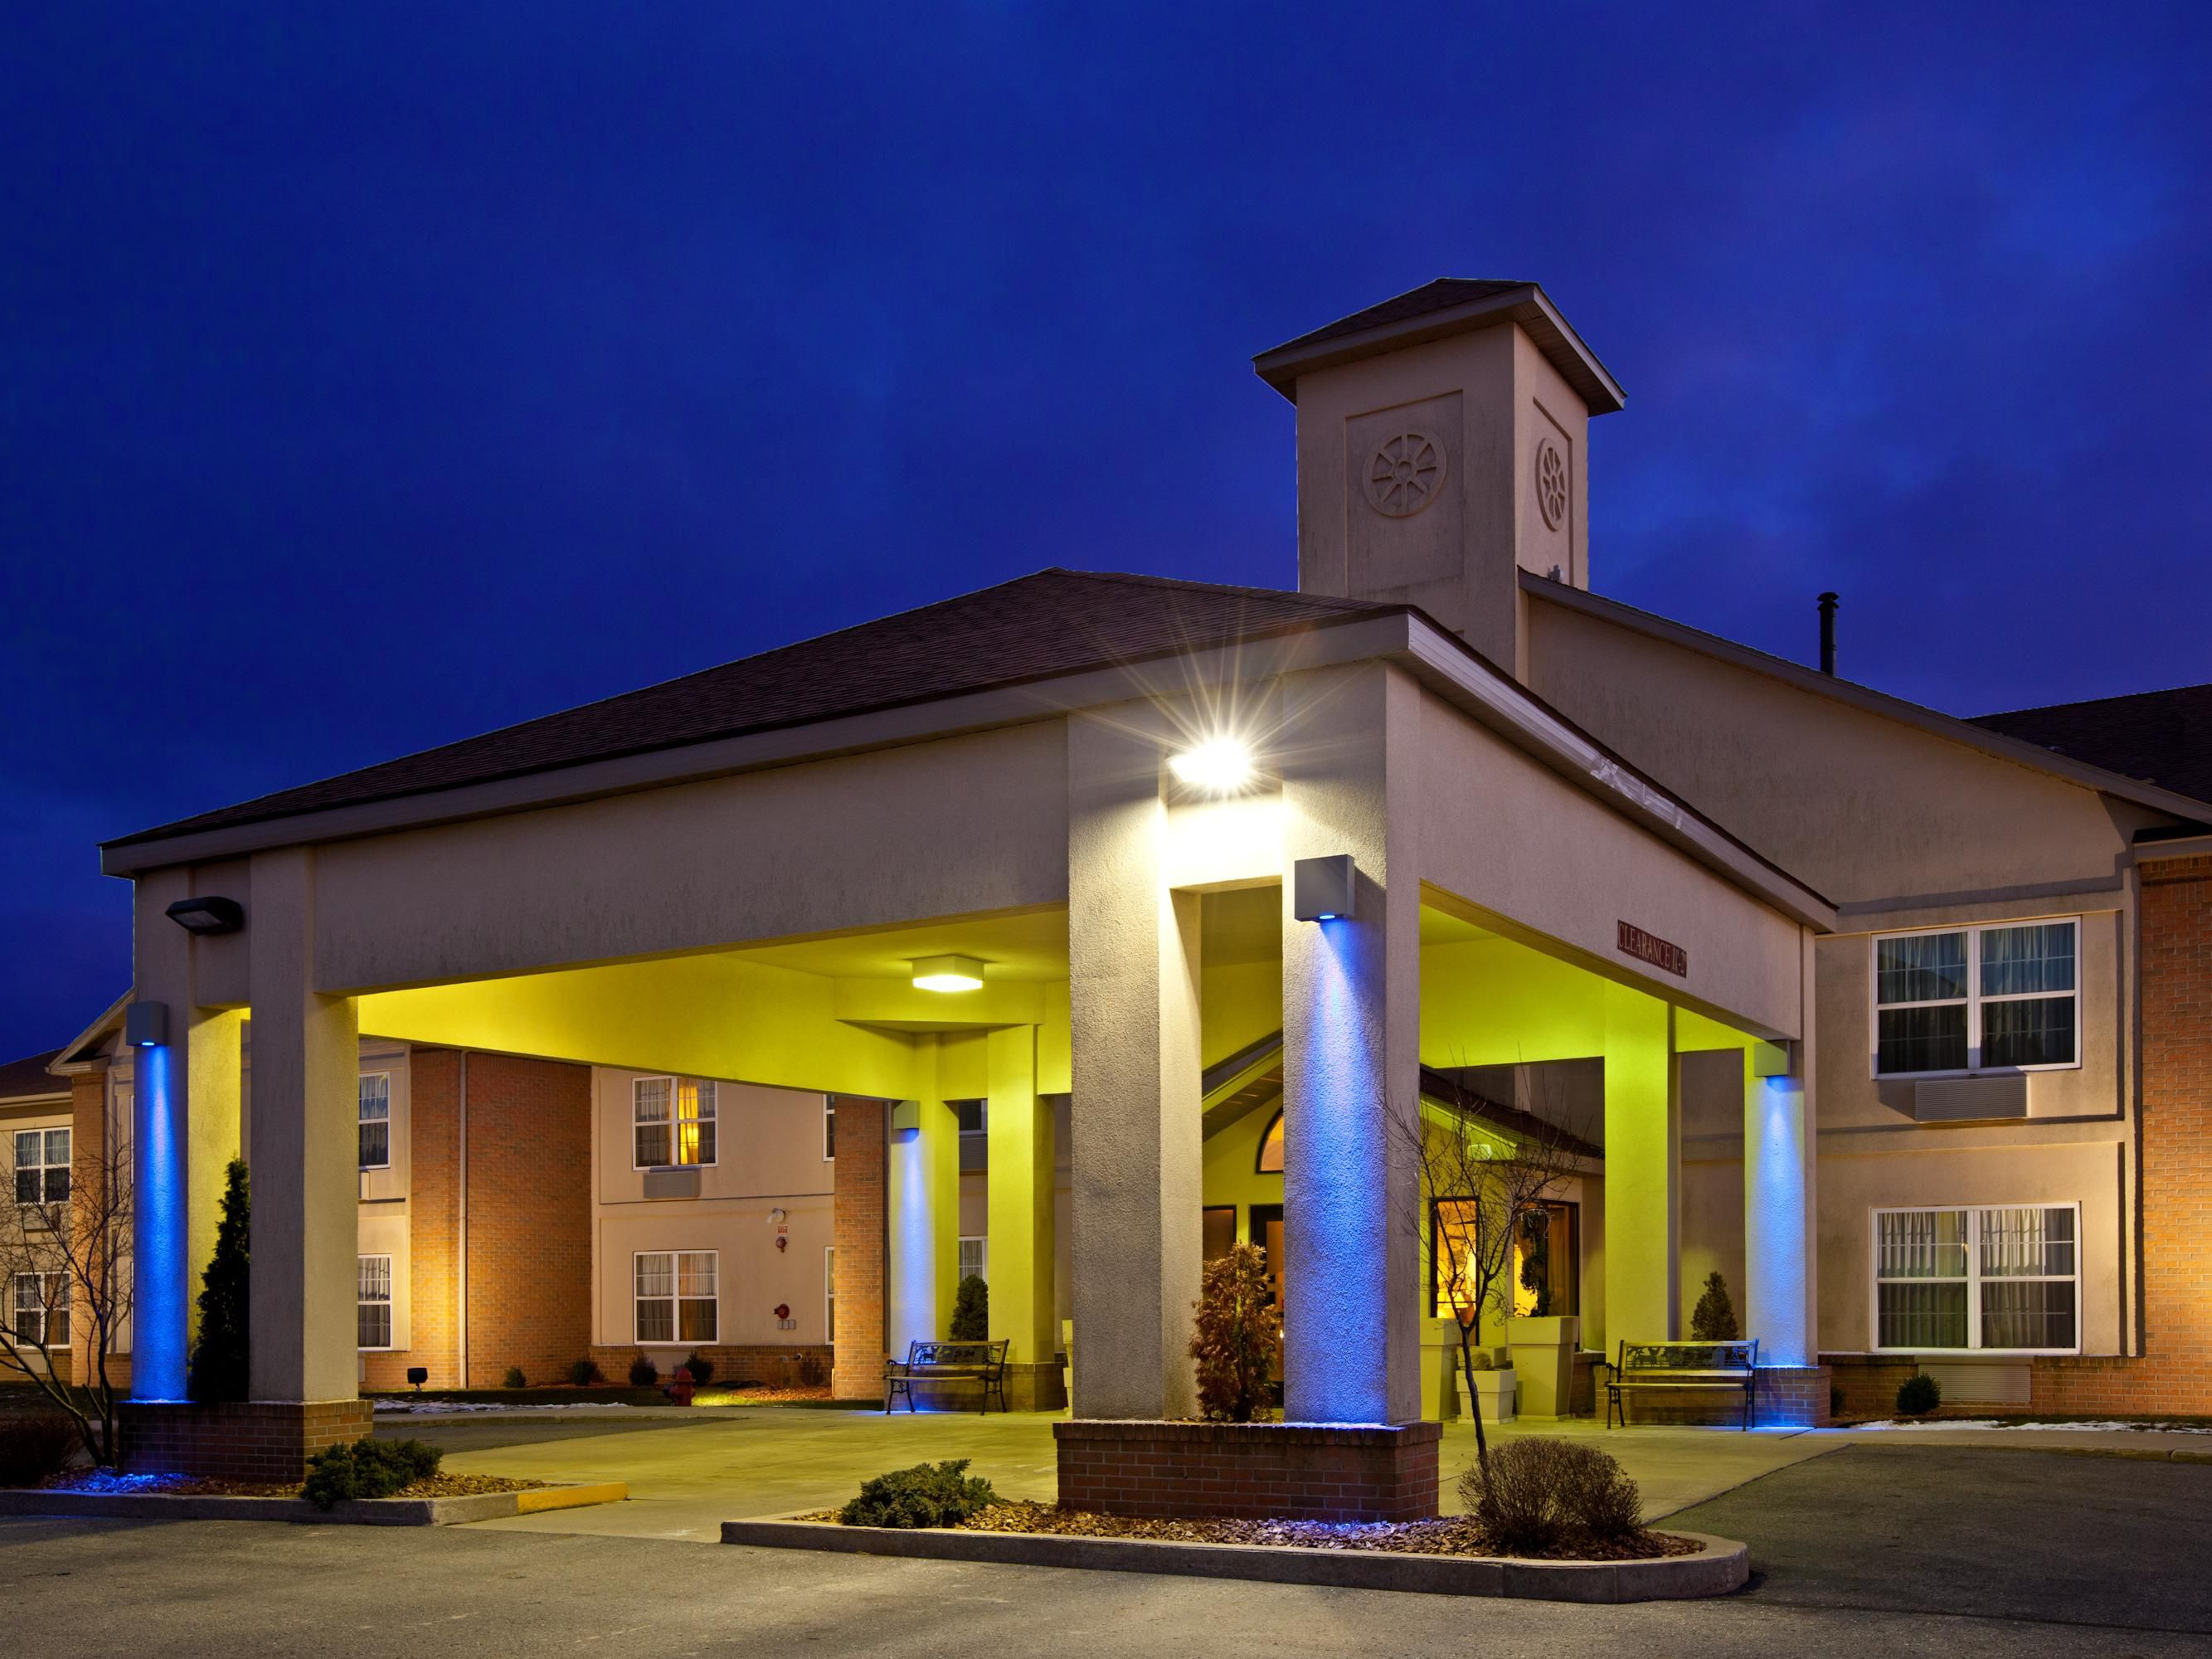 Holiday Inn Express Holiday Inn Express & Suites Bad Axe Hotel by IHG